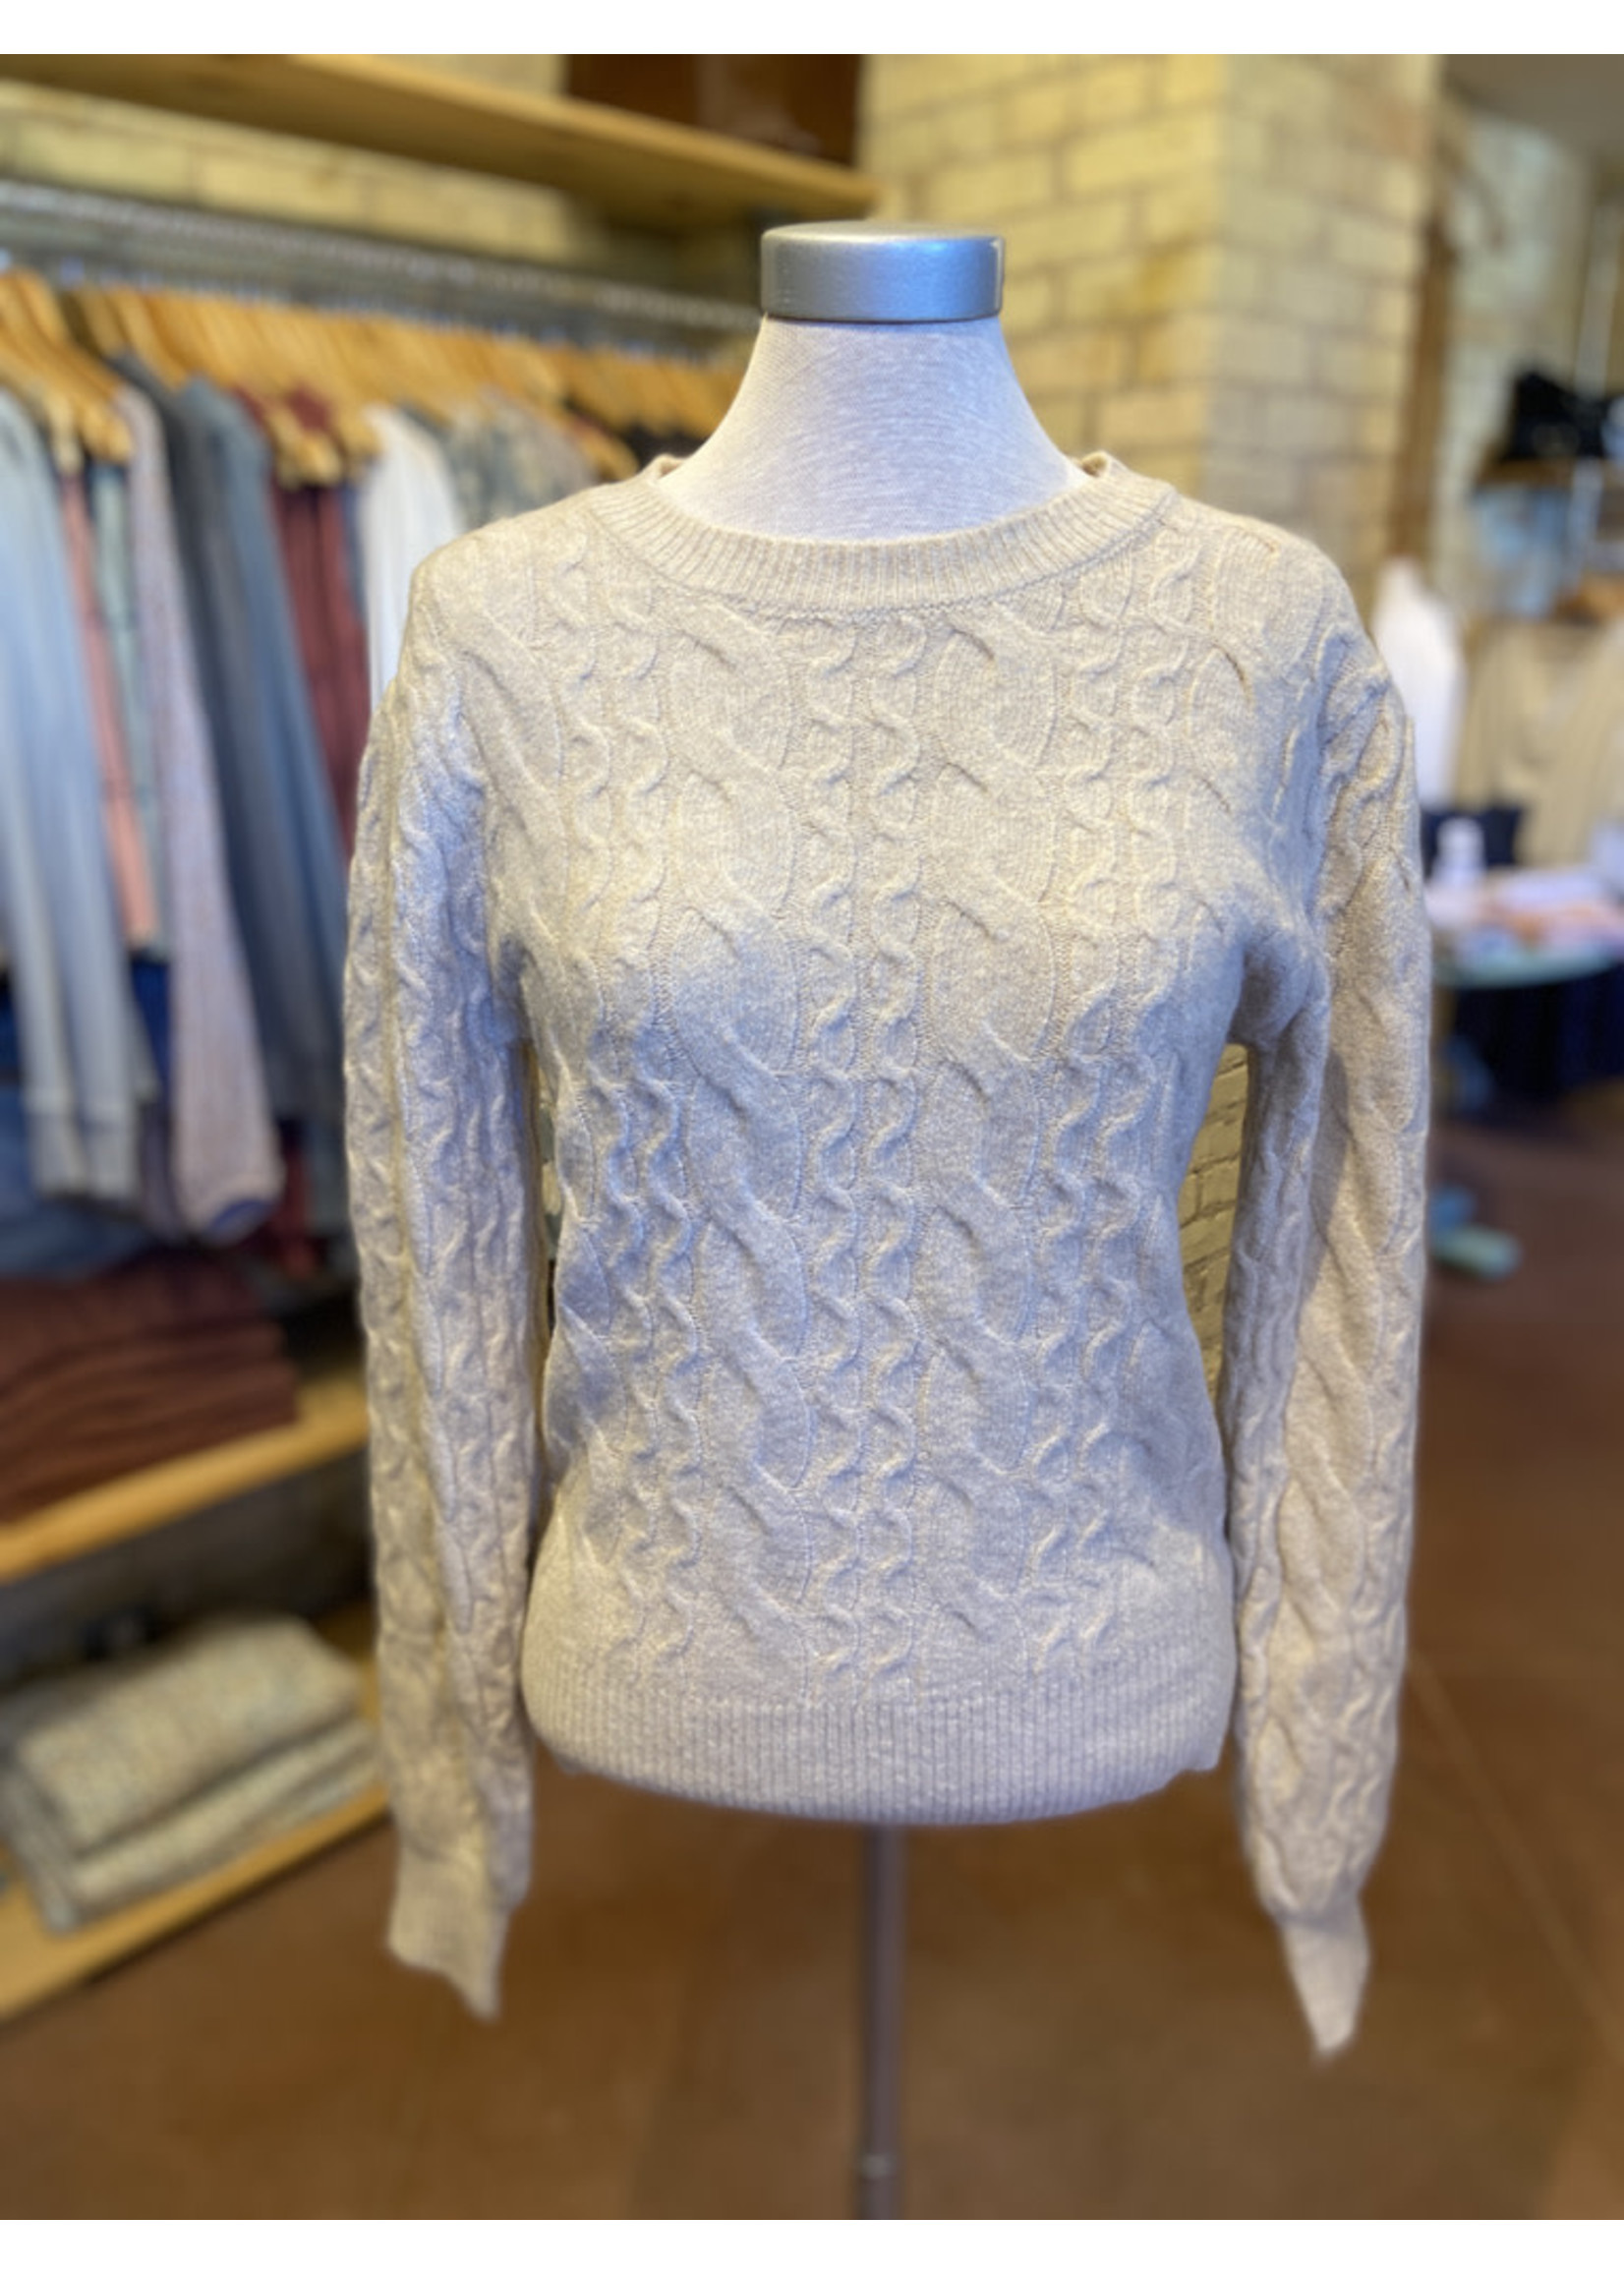 Current Air Round Neck Cable Knit Pullover